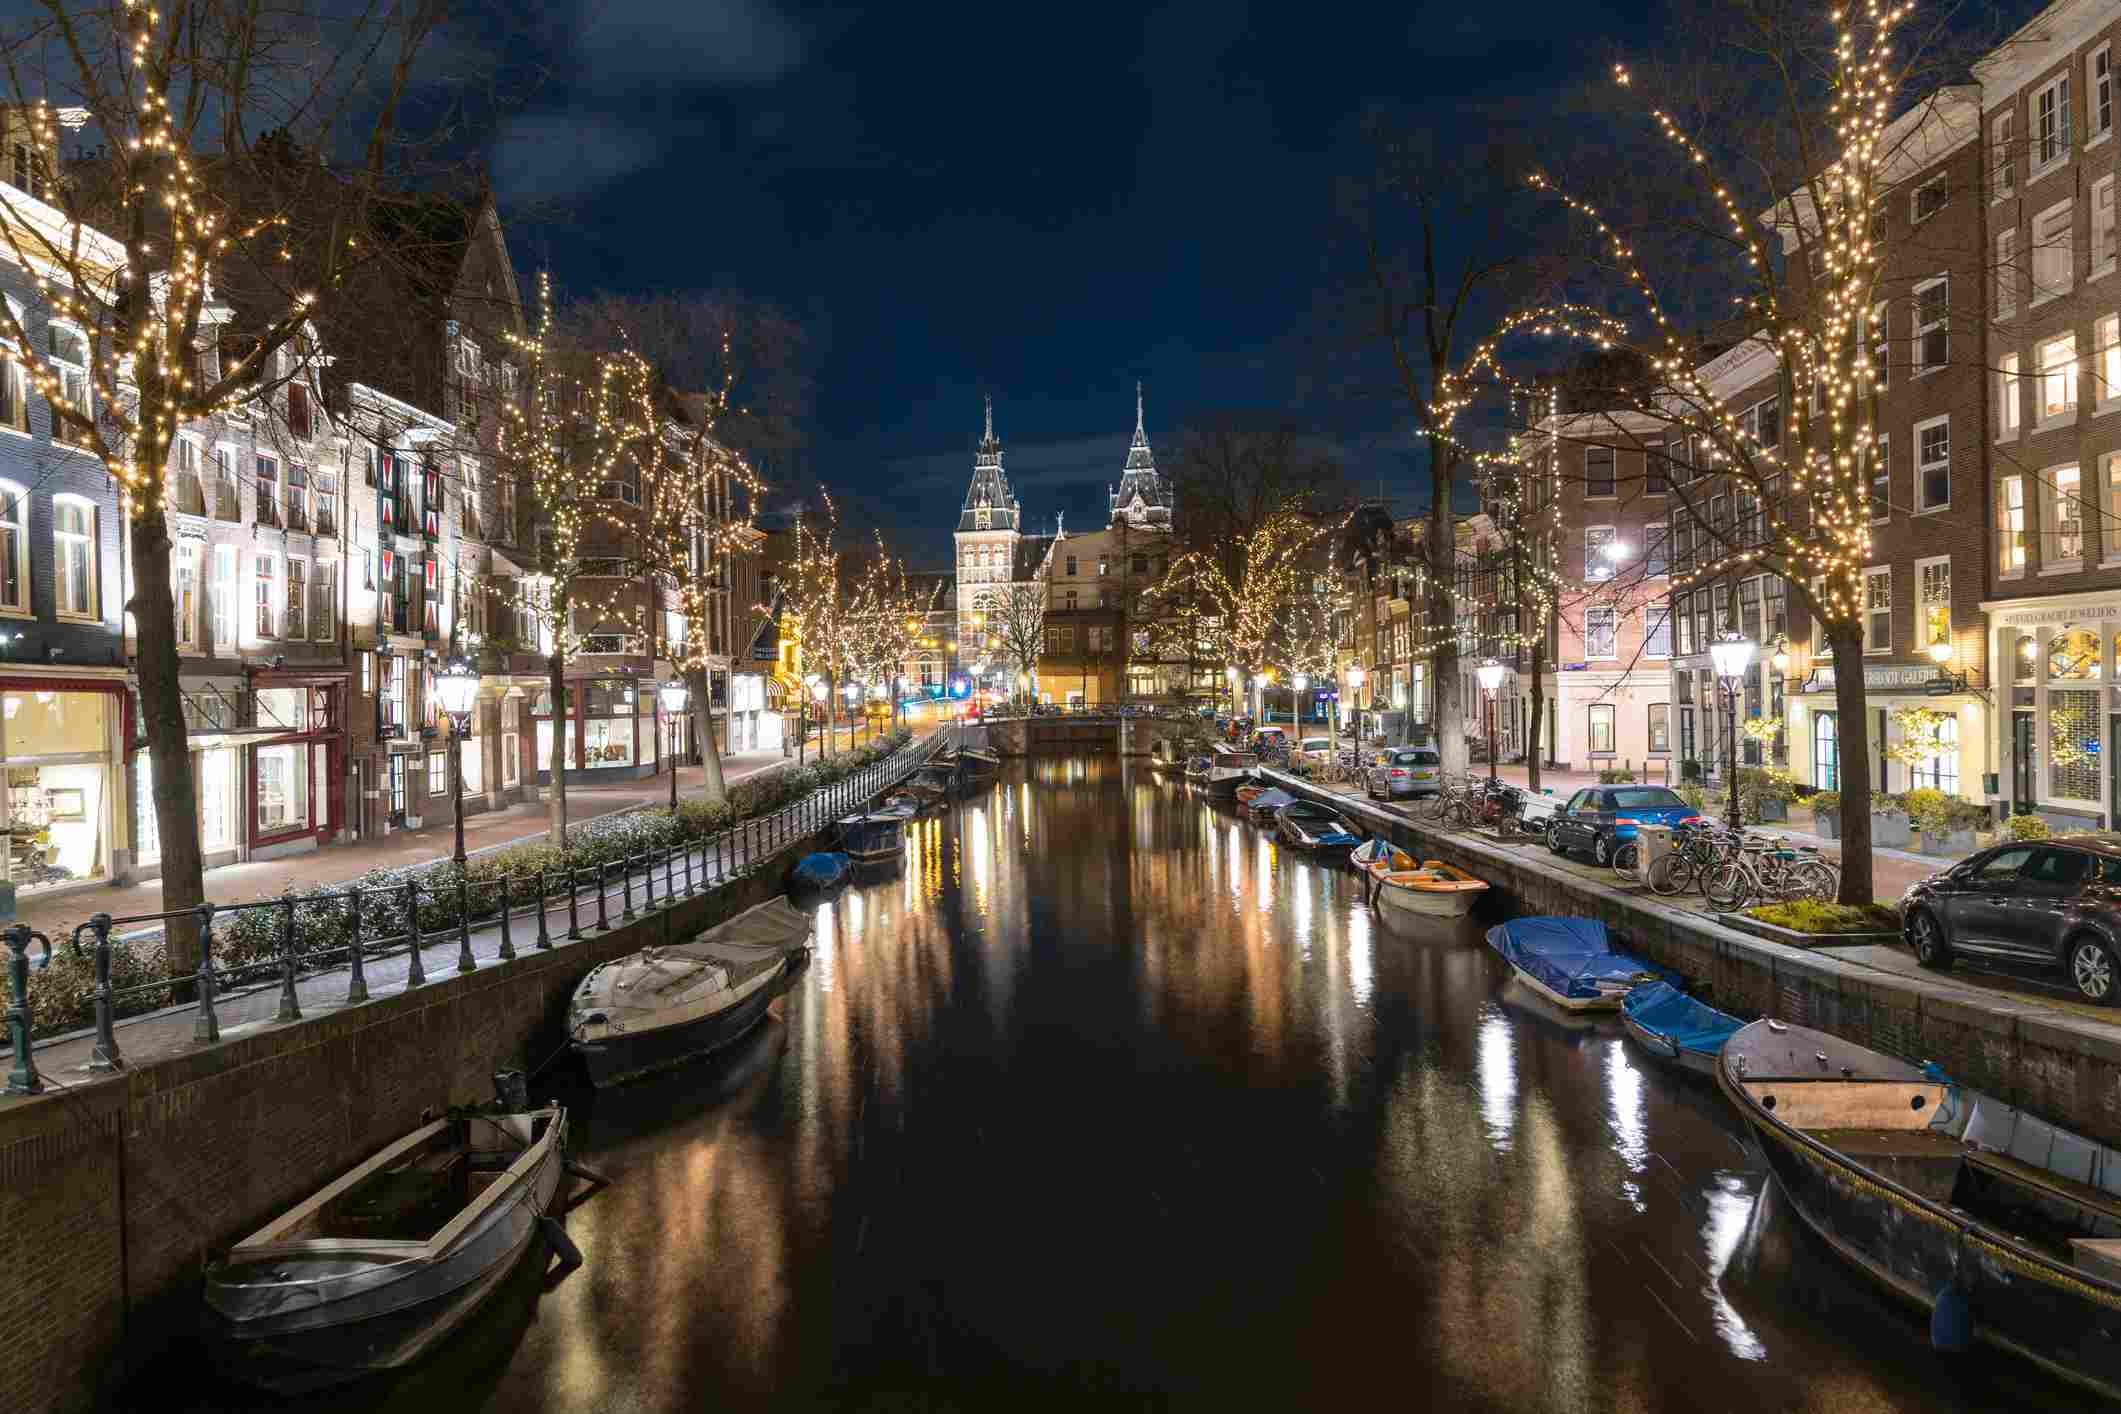 Rijksmuseum and canal at night